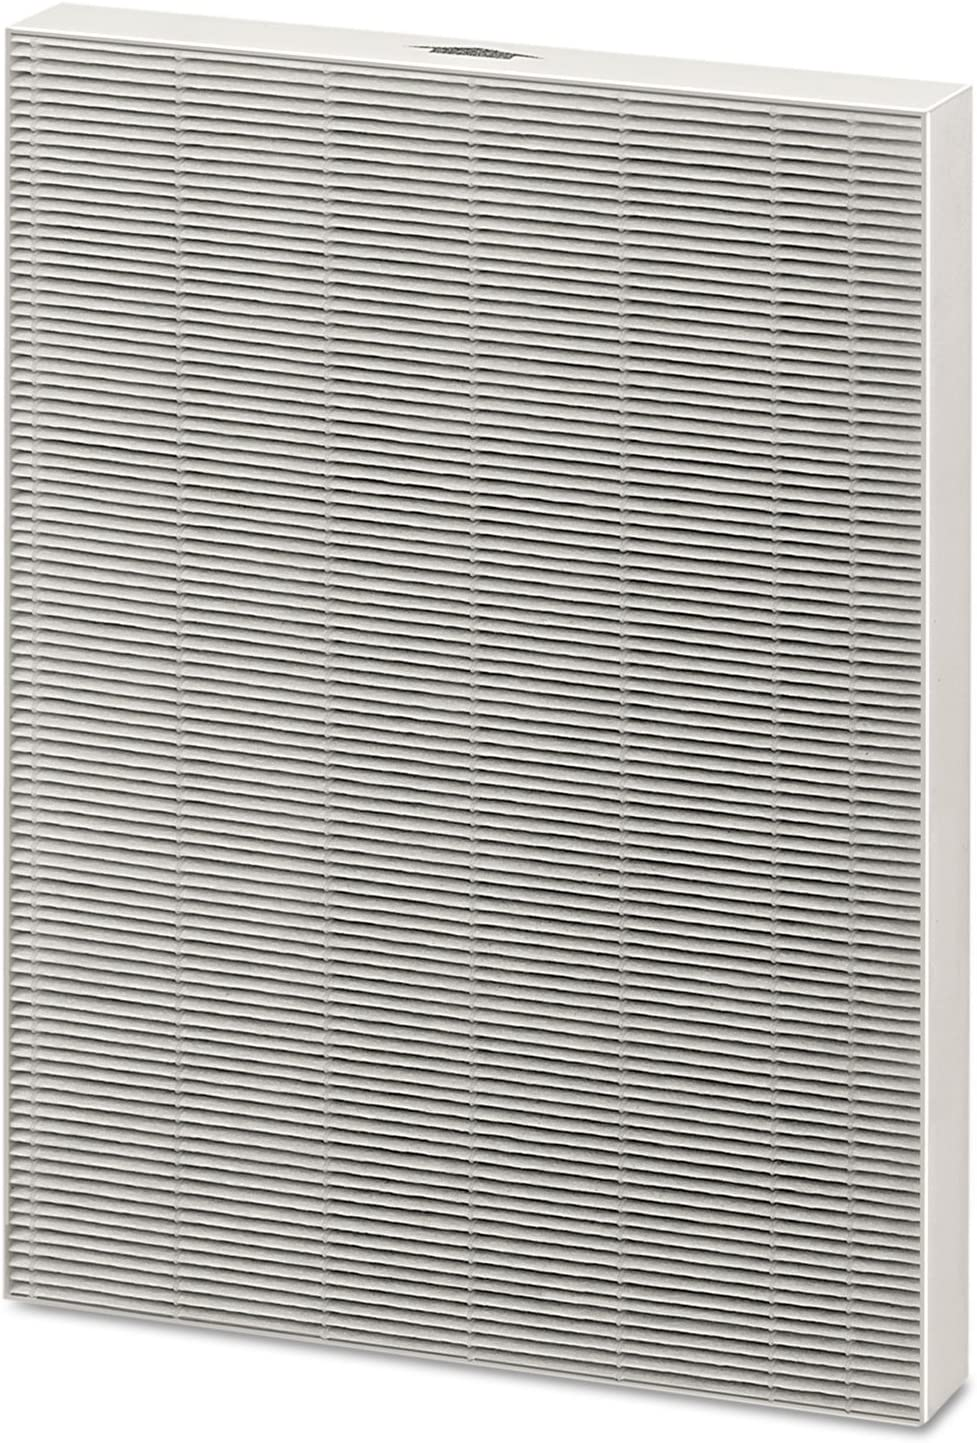 Fellowes 9370101 HF-300 True HEPA for Filter AP-300P A ! Super beauty product restock quality top! surprise price is realized Replacement